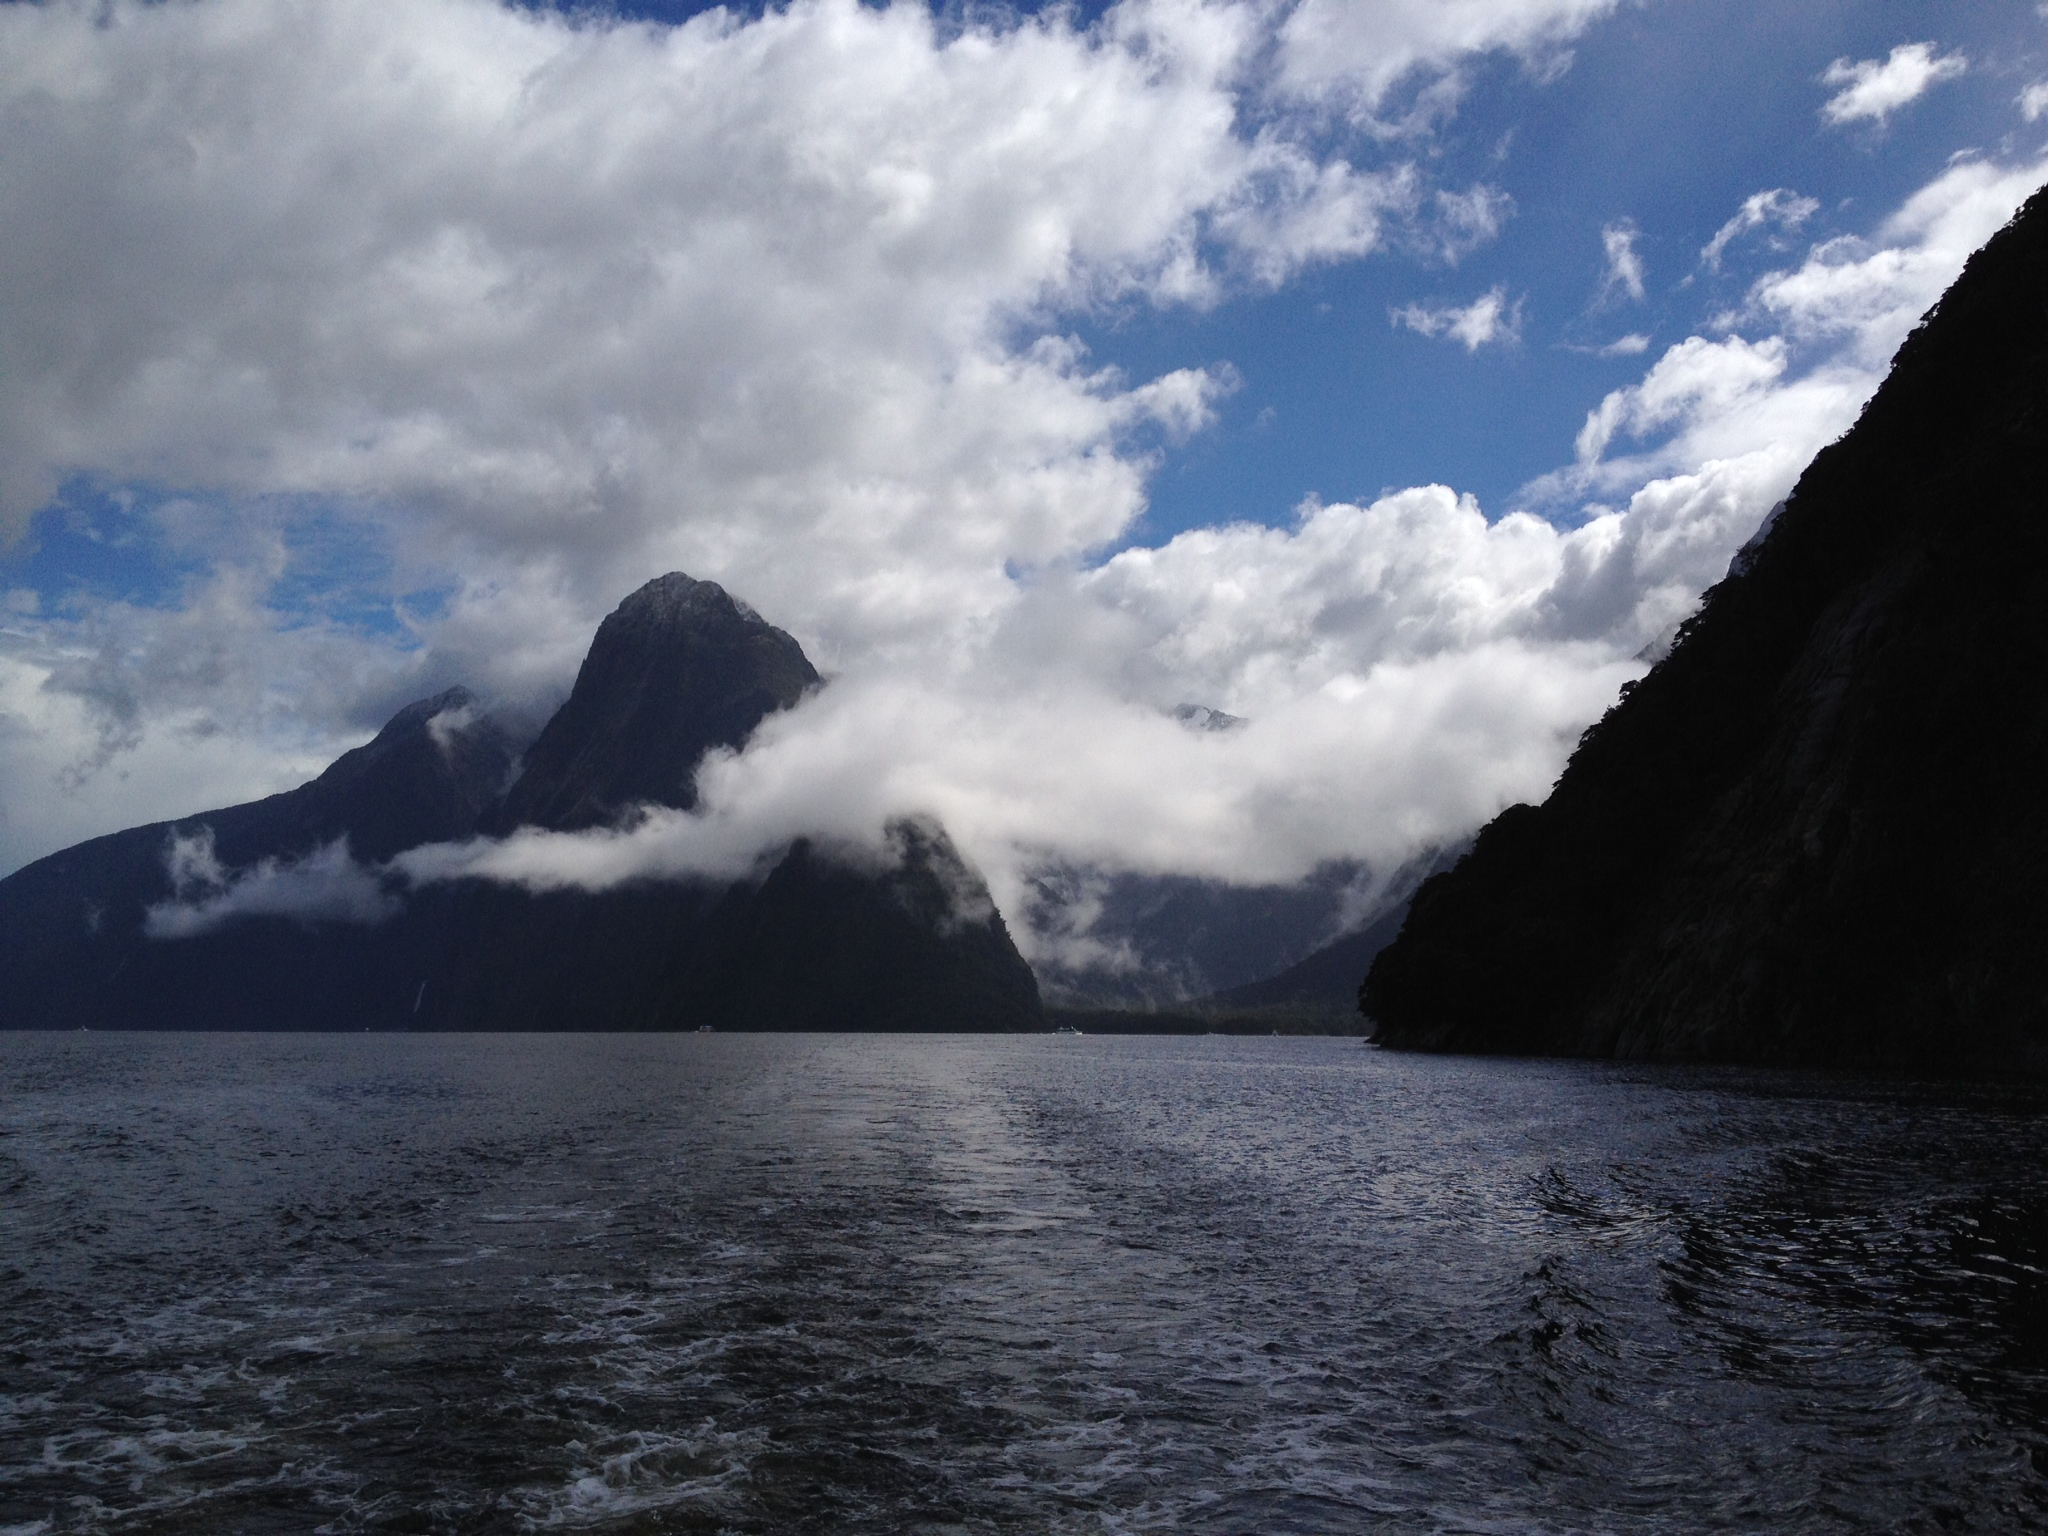 Milford Sound, New Zealand